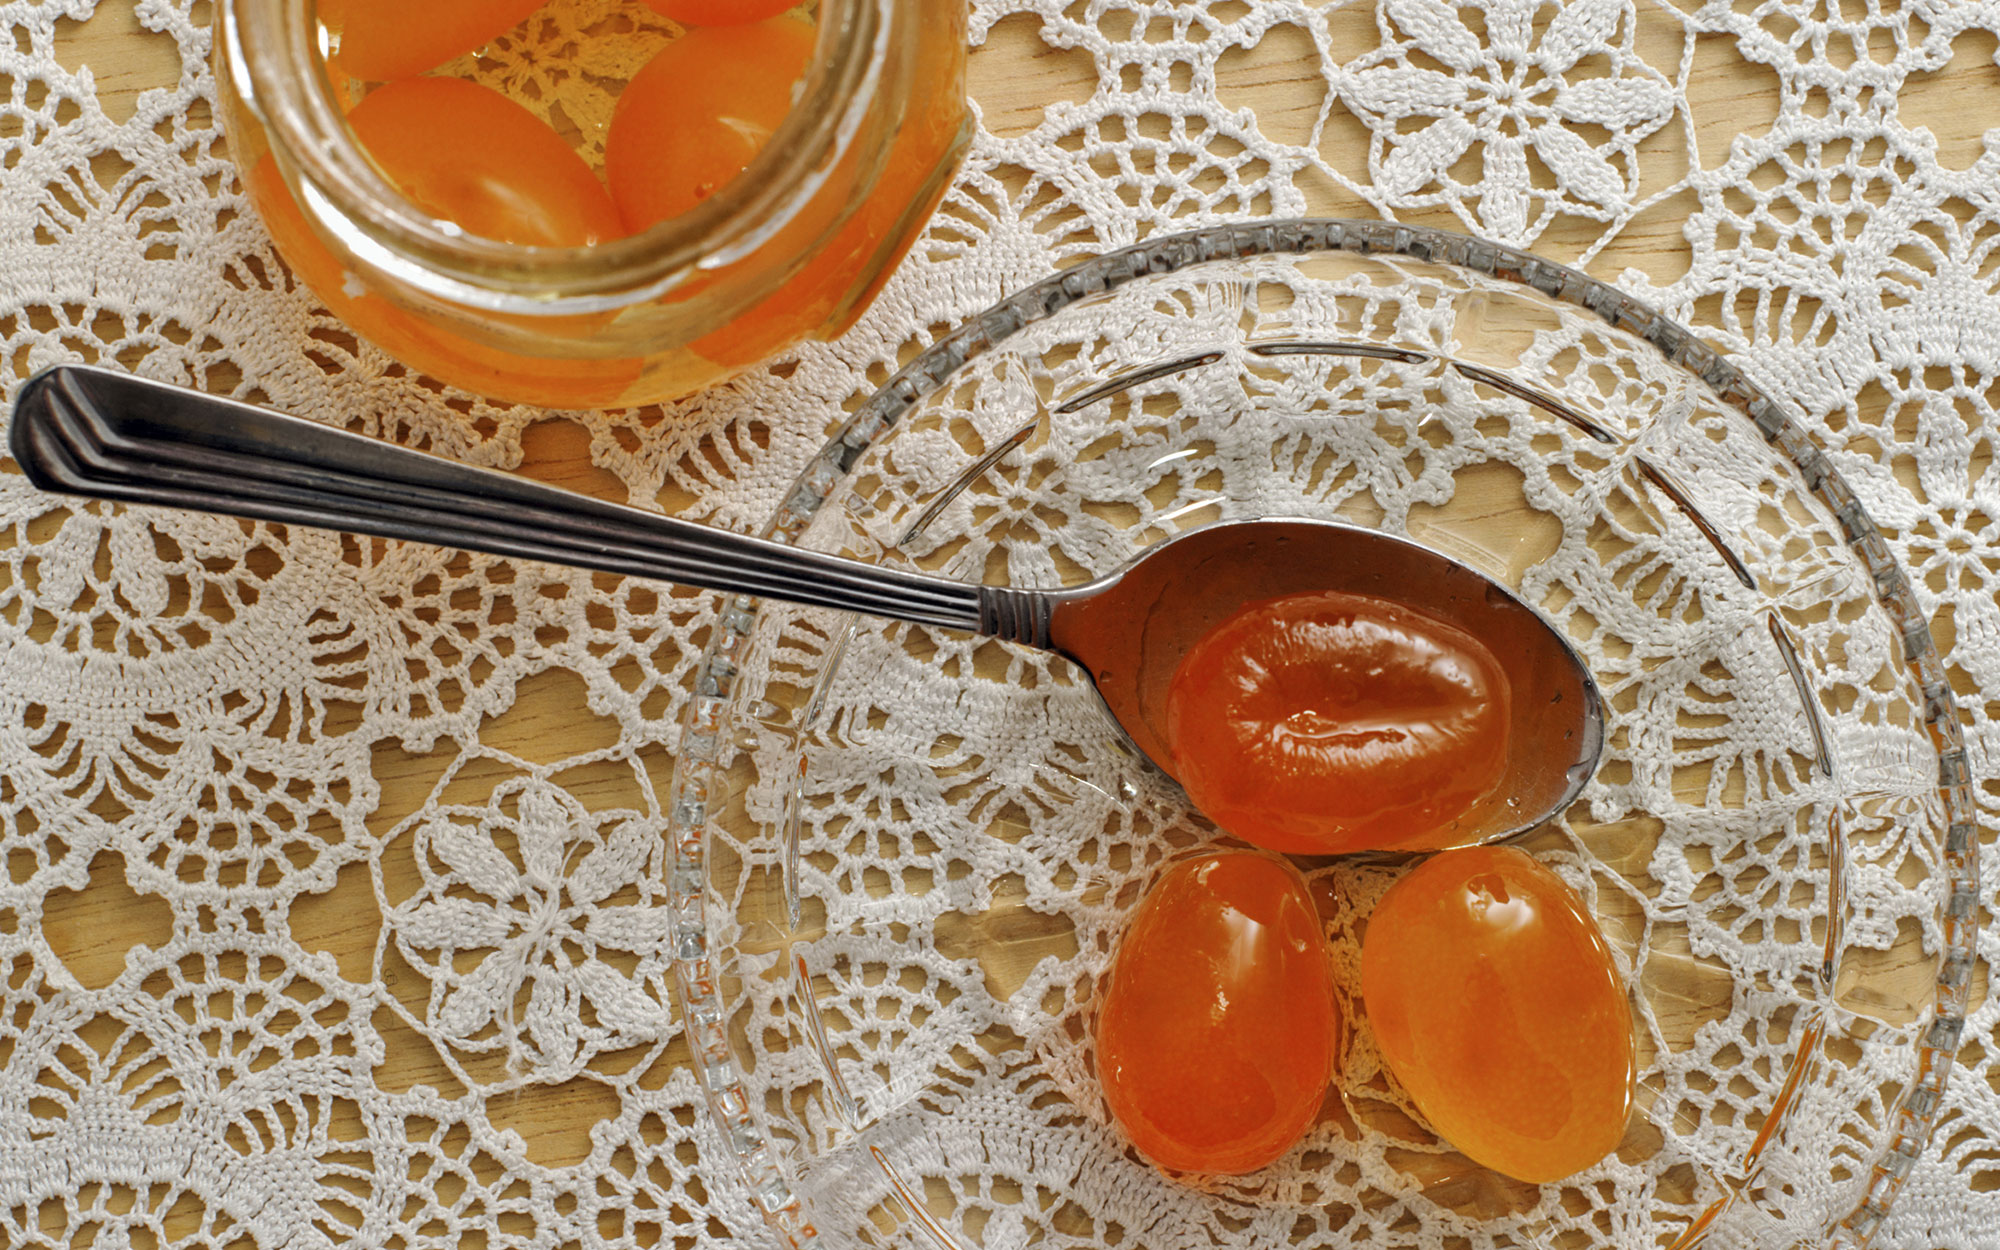 201401-w-strangest-cold-remedies-kumquat-syrup